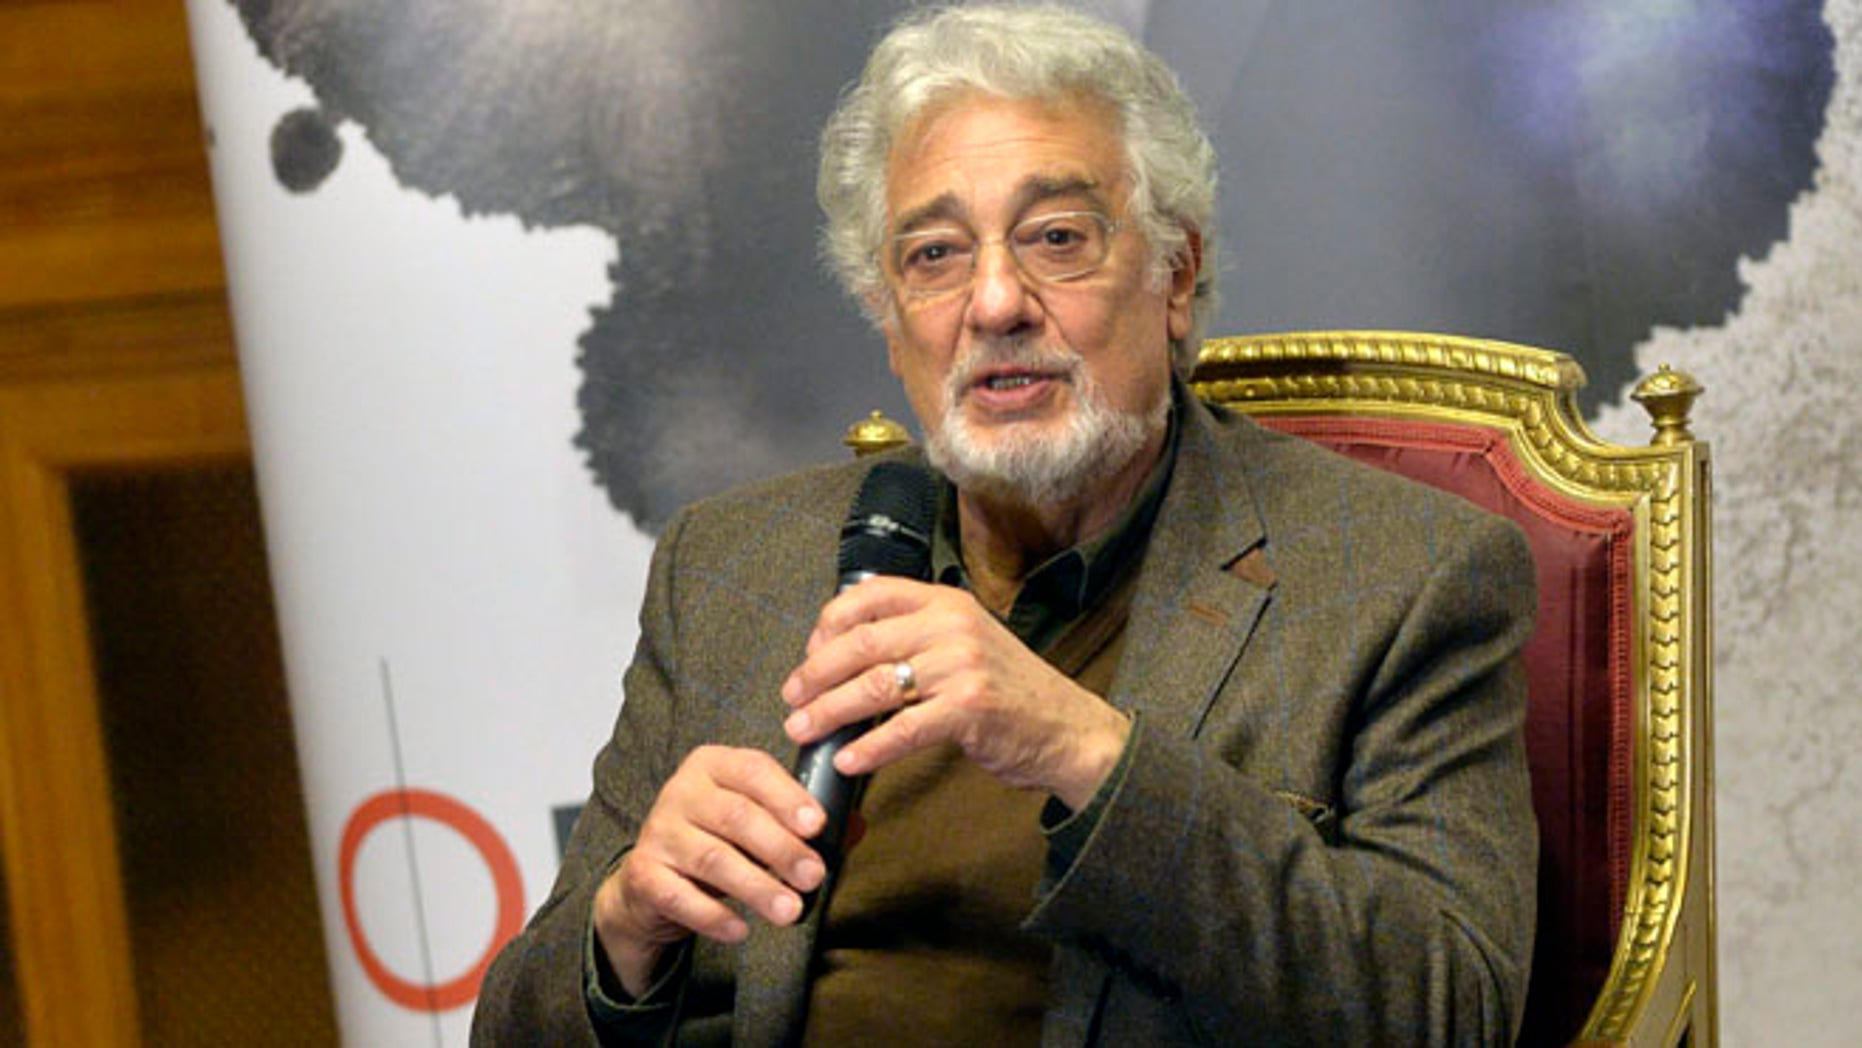 Spanish tenor Placido Domingo speaks during a press conference one day ahead of his performance at the Shakespeare gala as part of the Budapest Opera Ball in the Hungarian State Opera House in Budapest, Hungary, Friday, Feb. 5, 2016. (Zoltan Mathe/MTI via AP)